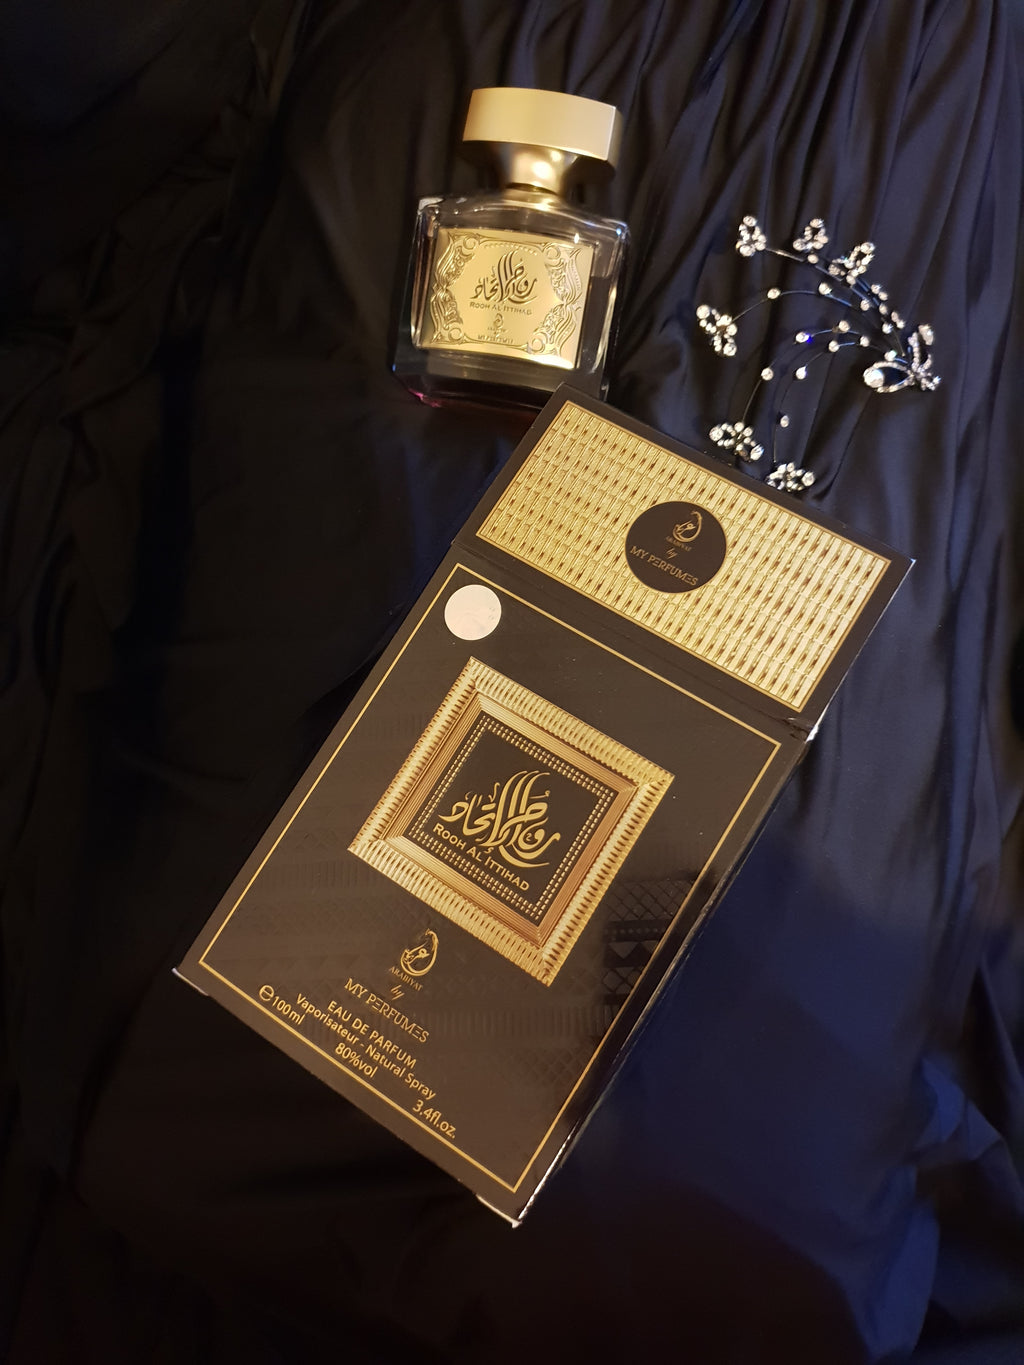 ROOH AL ITTIHAD SPRAY PERFUME BY ARABIYAT